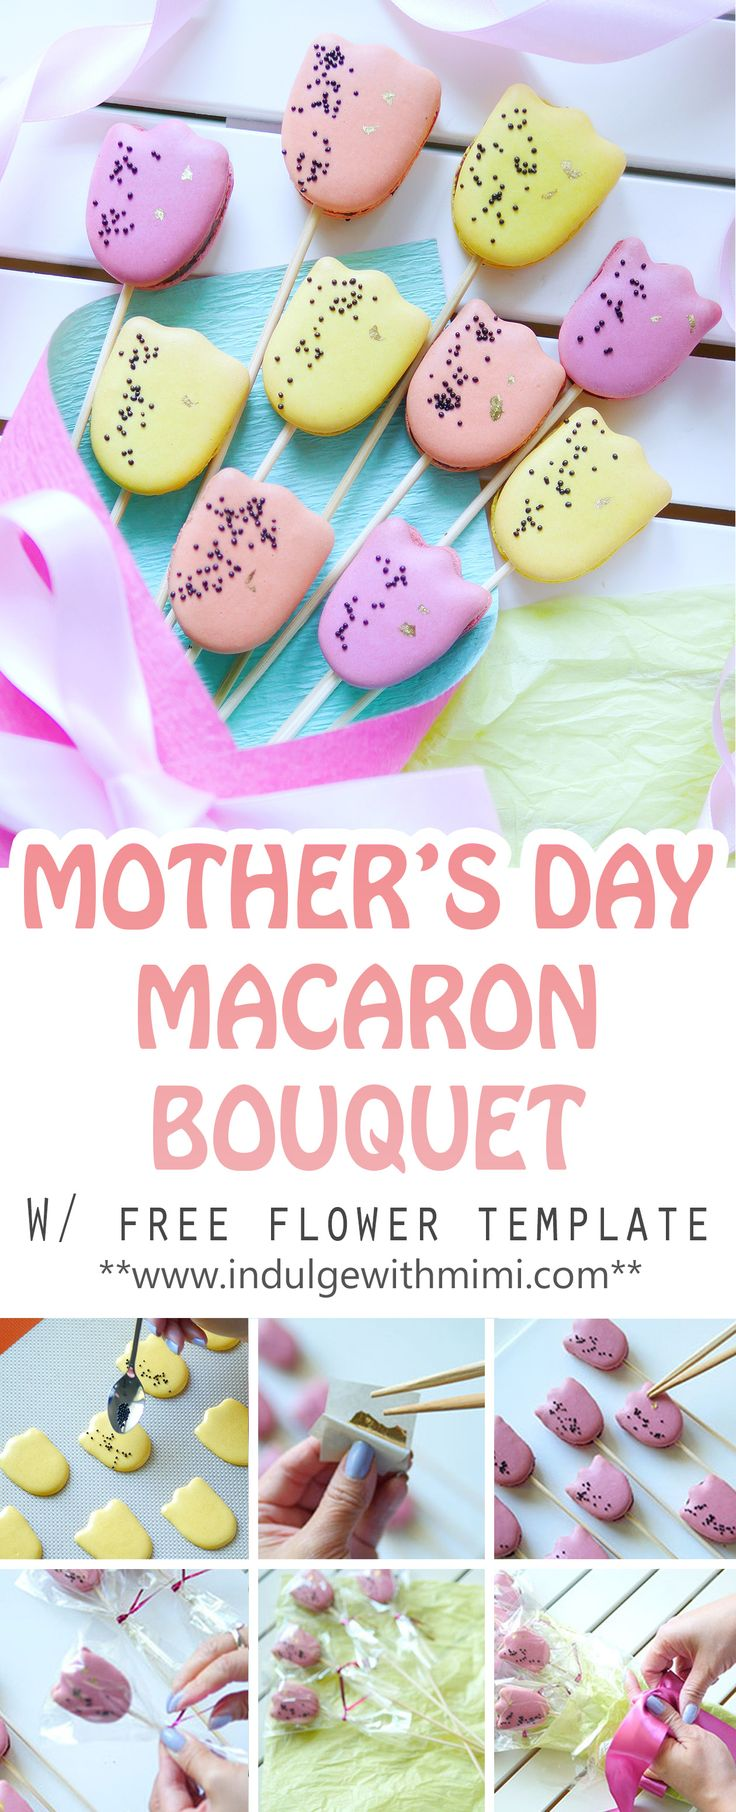 Surprise mom on Mother's Day with a handmade macaron bouquet. Includes free template and recipe.